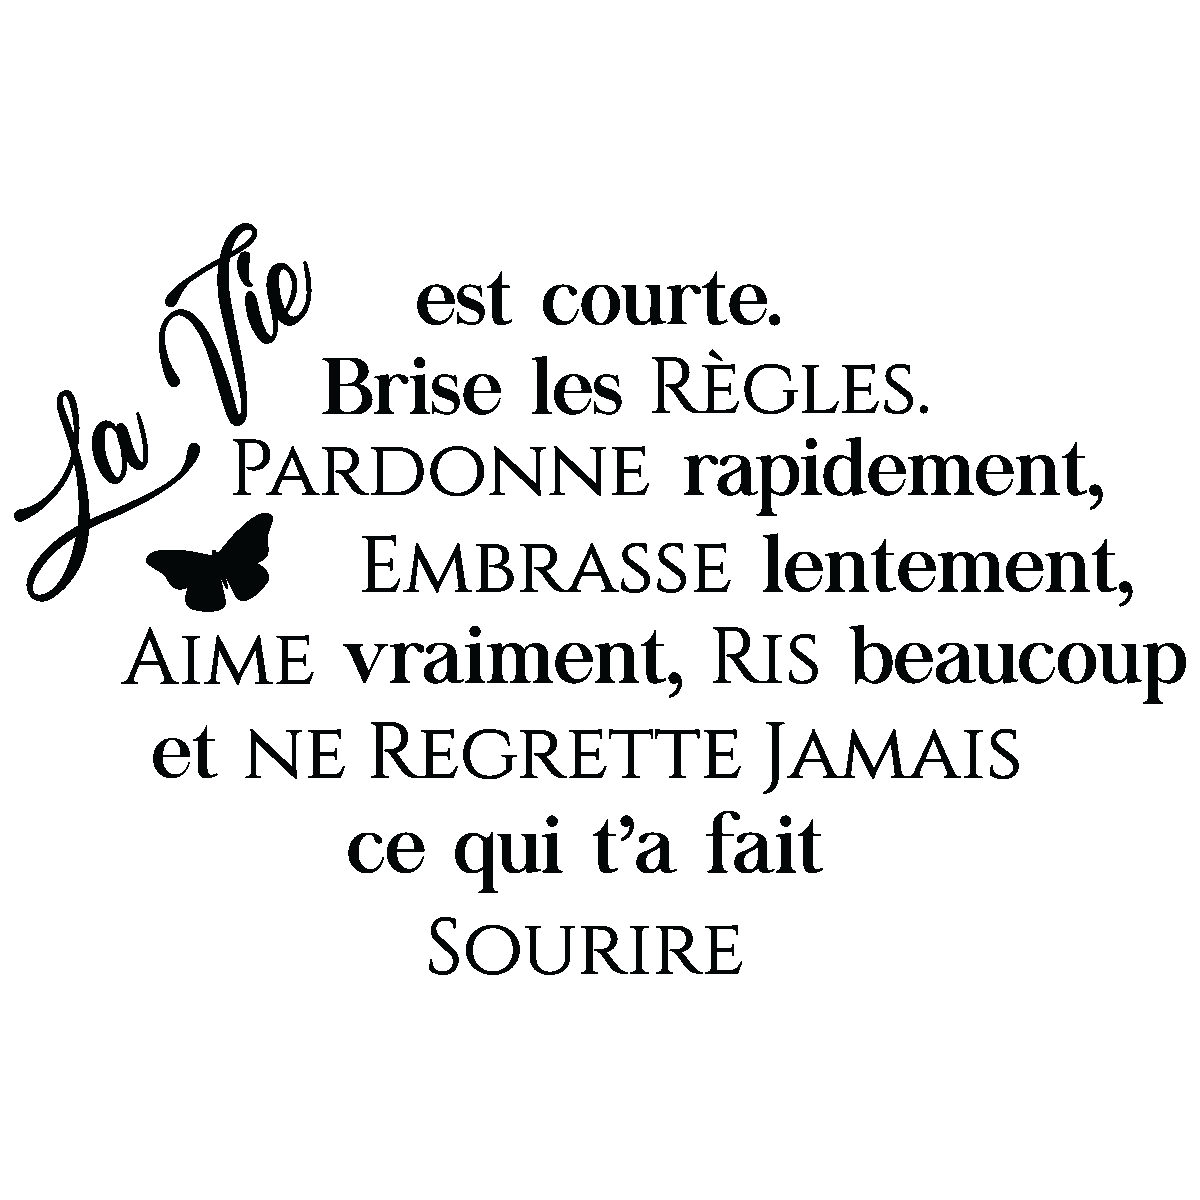 Sticker Citation La Vie Est Courte Stickers Citations Francais